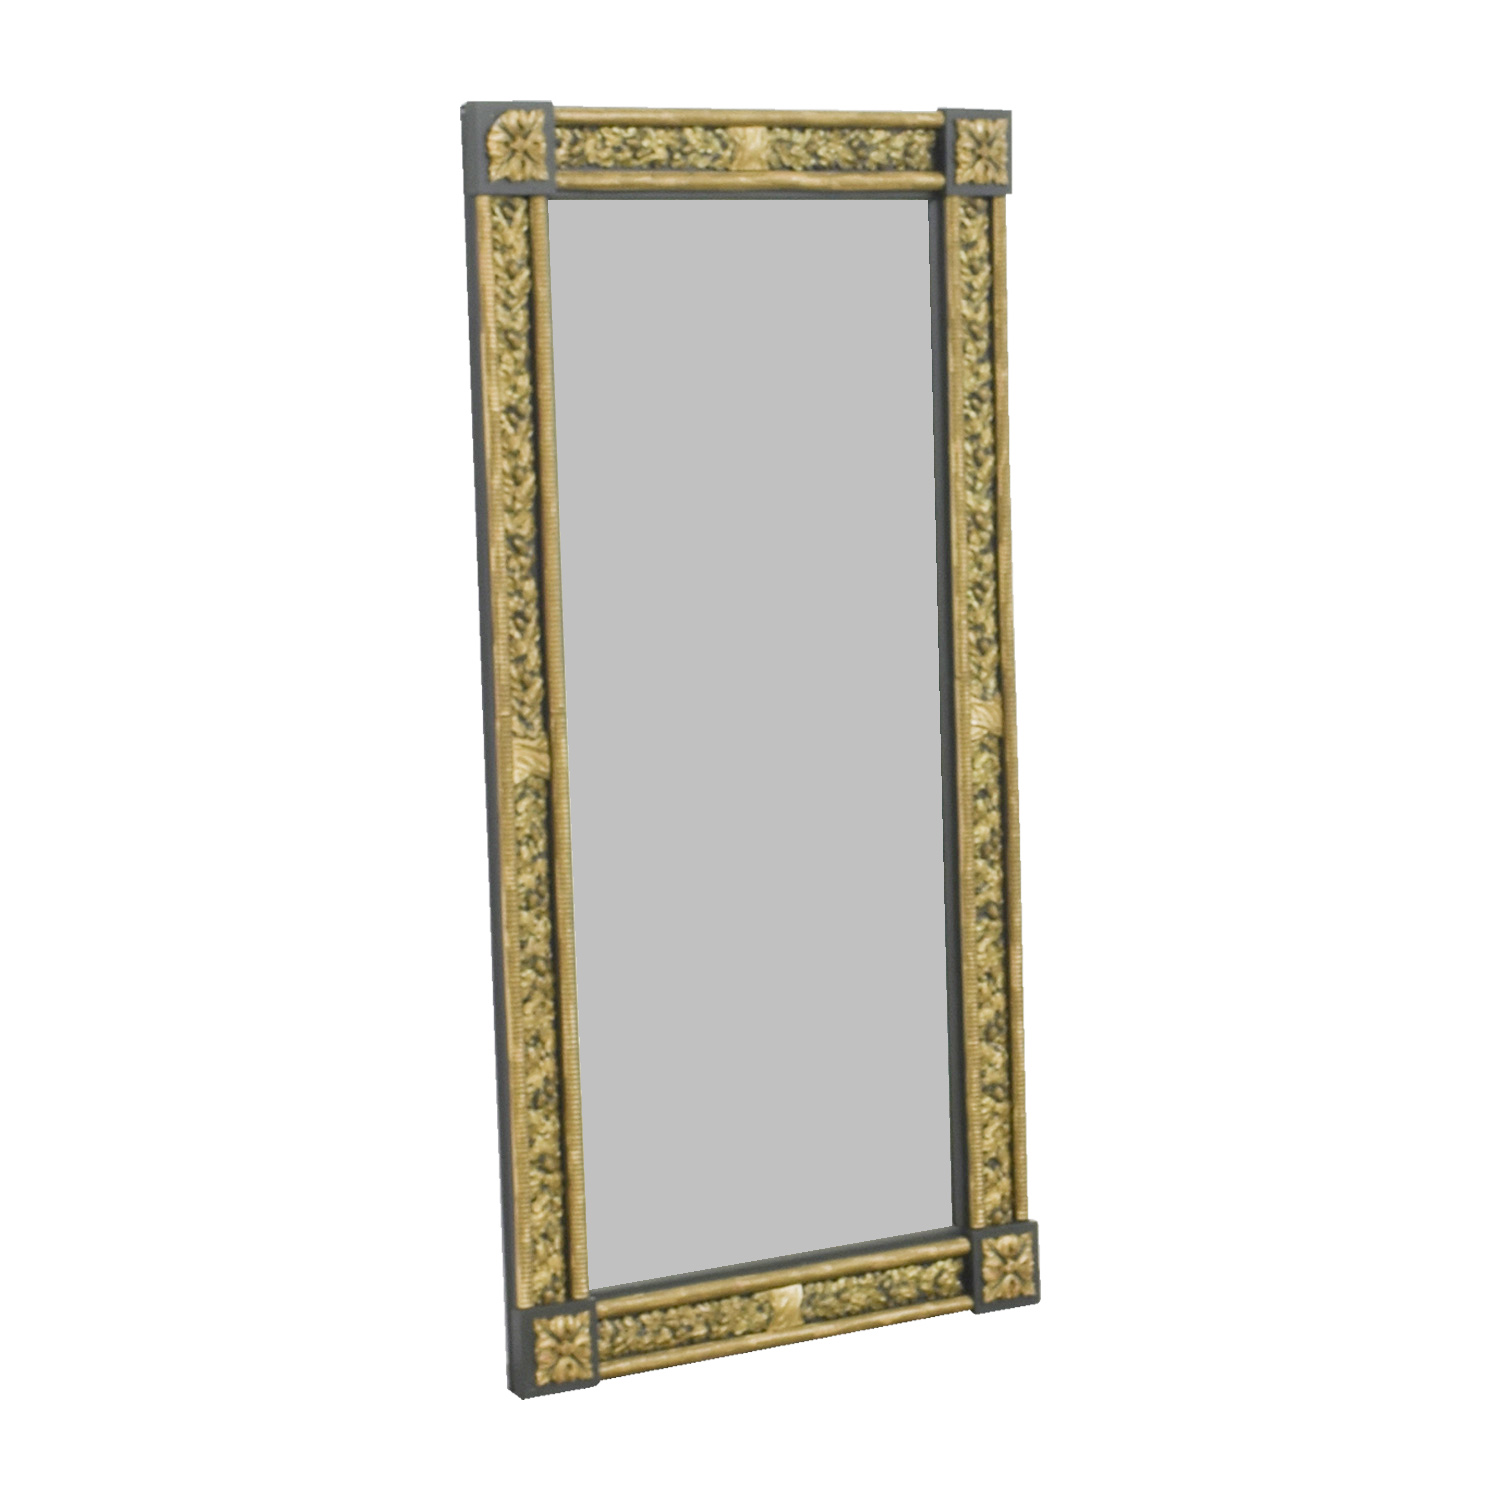 Gold and Silver Framed Wall Mirror